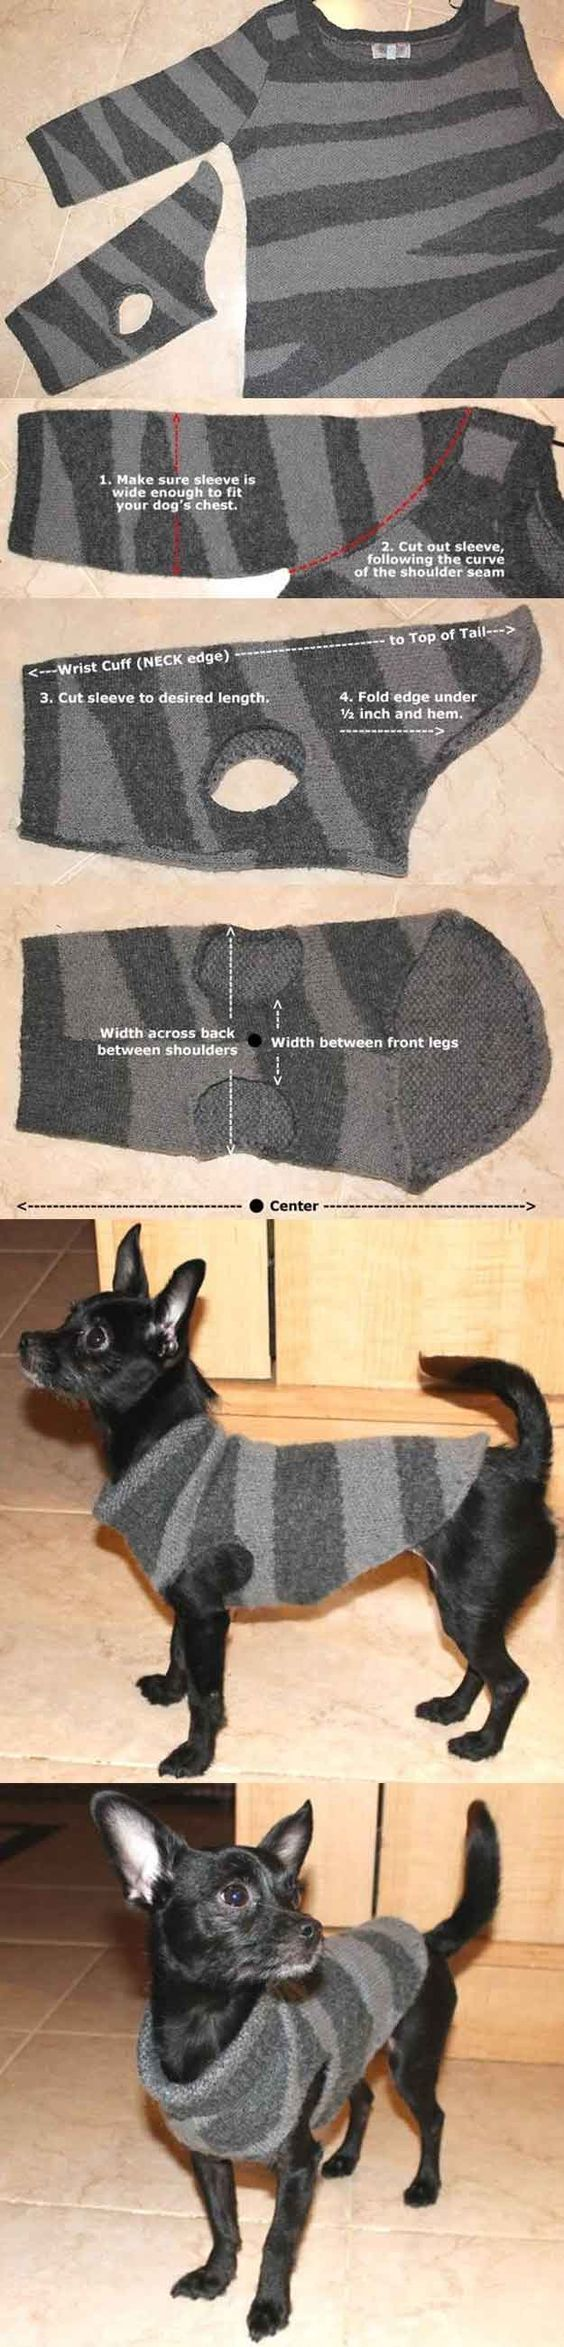 Check out 12 DIY Dog Clothes and Coats | Upcycled Dog Sweater by DIY Ready at